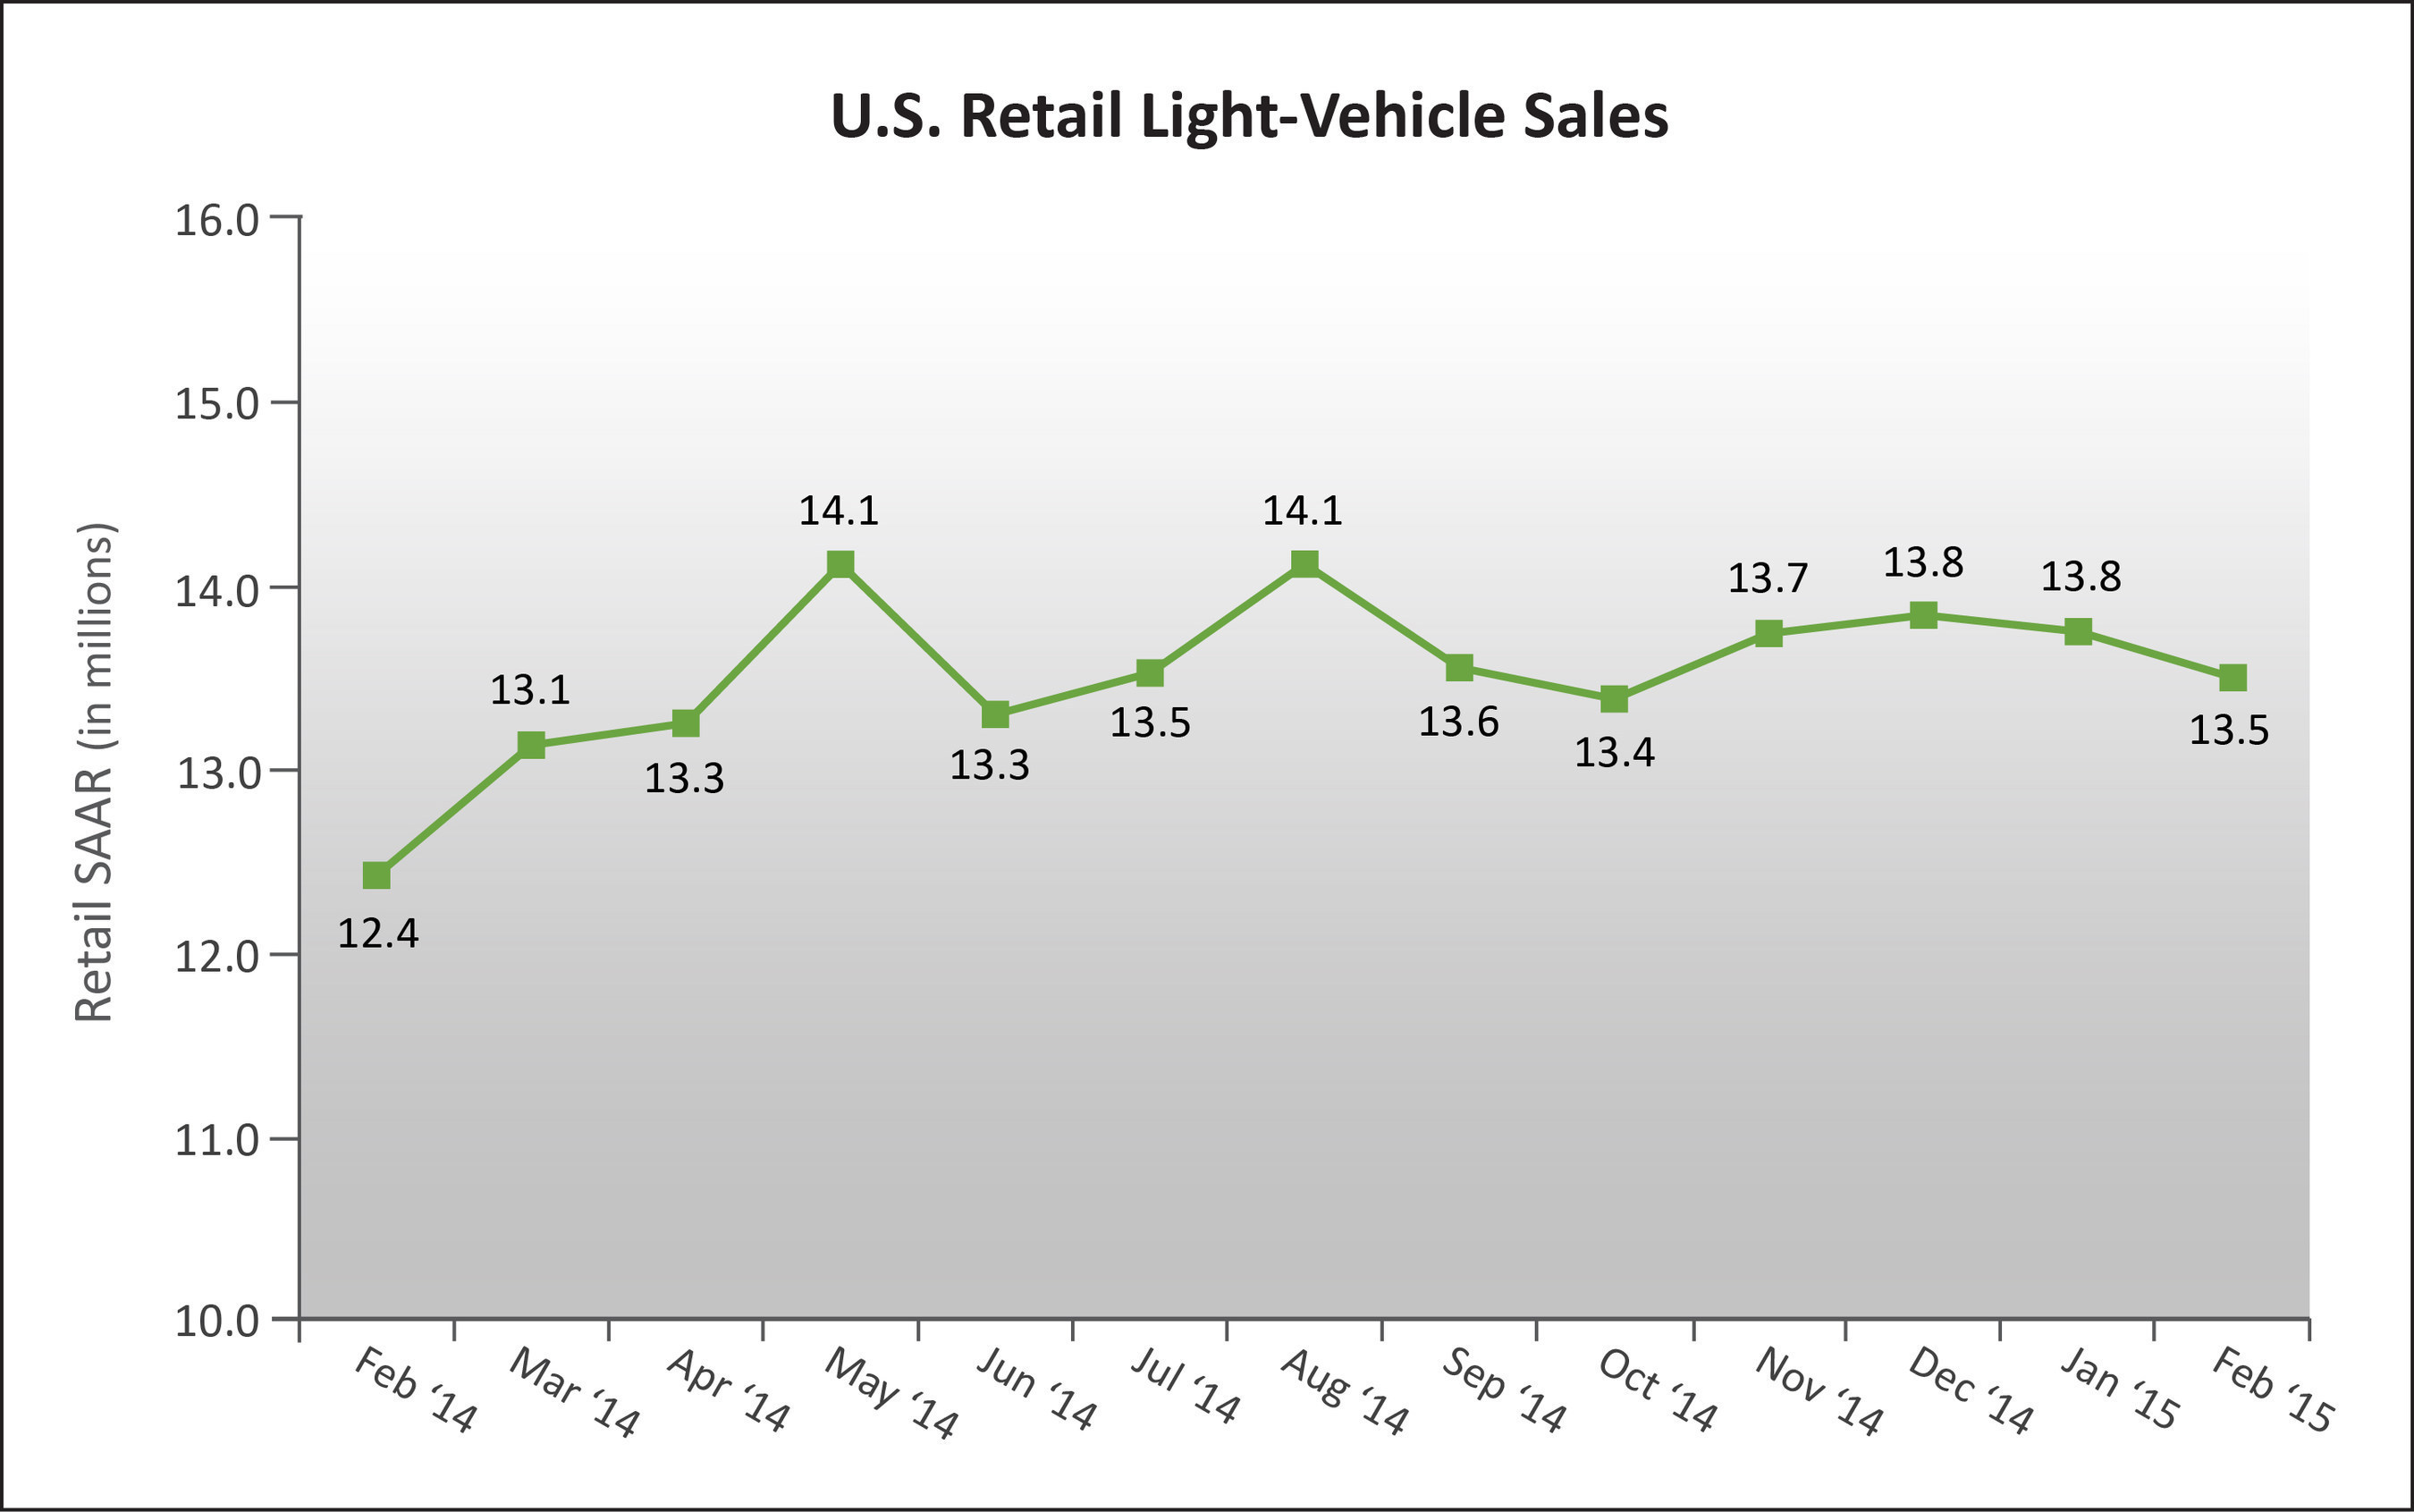 U.S. Retail SAAR - February 2014 to February 2015 (in millions of units). Source: Power Information Network(R) (PIN) from J.D. Power.